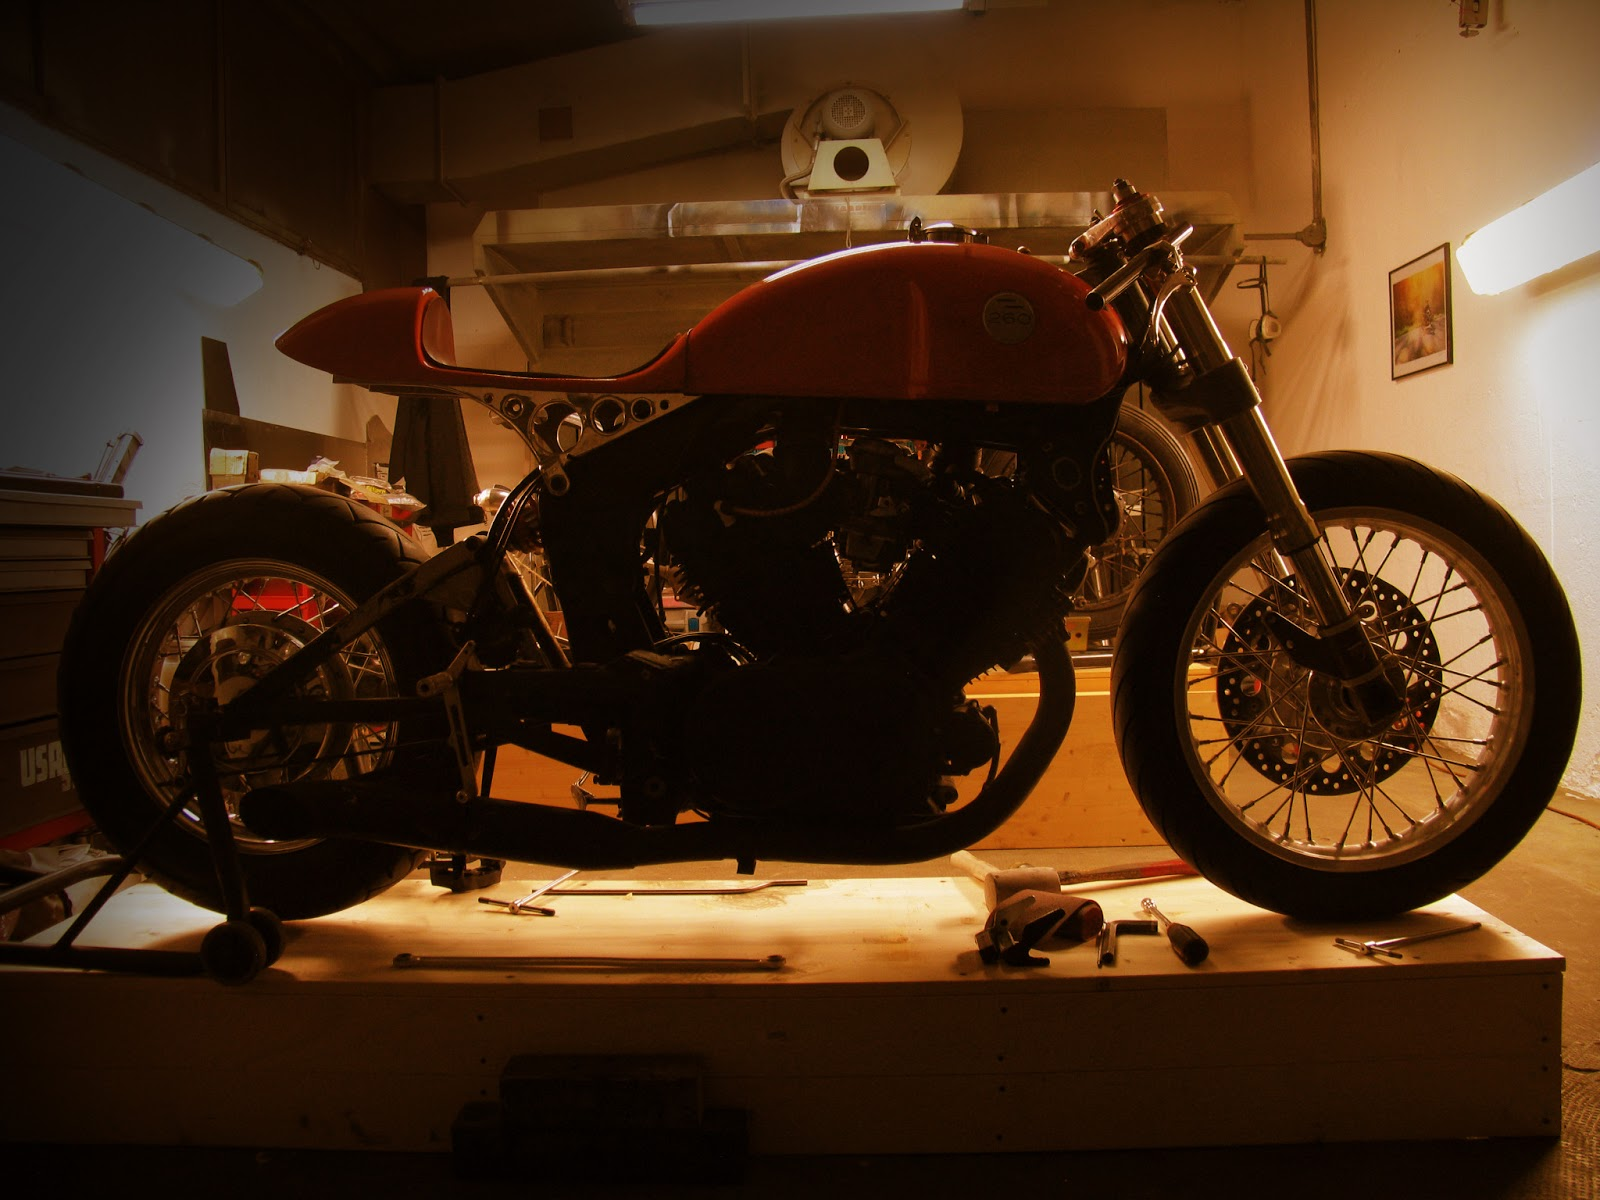 1982 Yamaha XV750 by Plan B Motorcycles :: via Inazuma Cafe